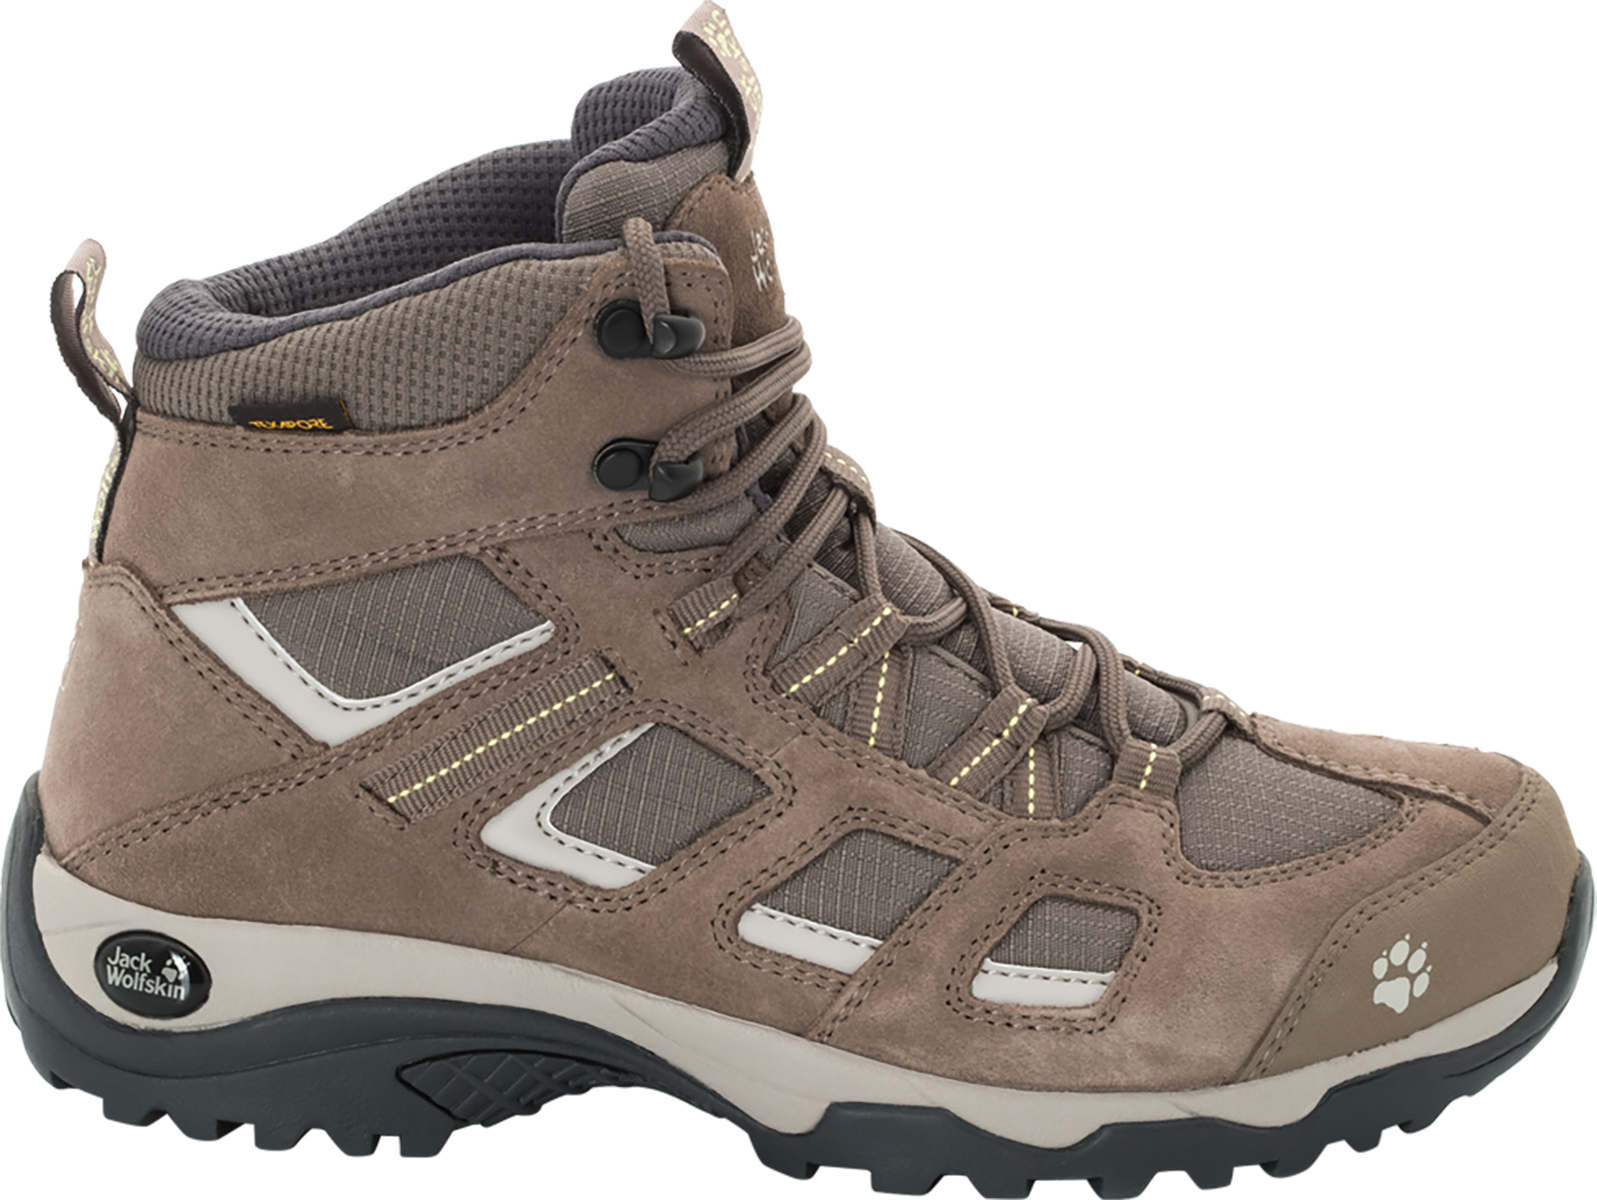 Wiggle | Merrell Women's Thermo Chill 6